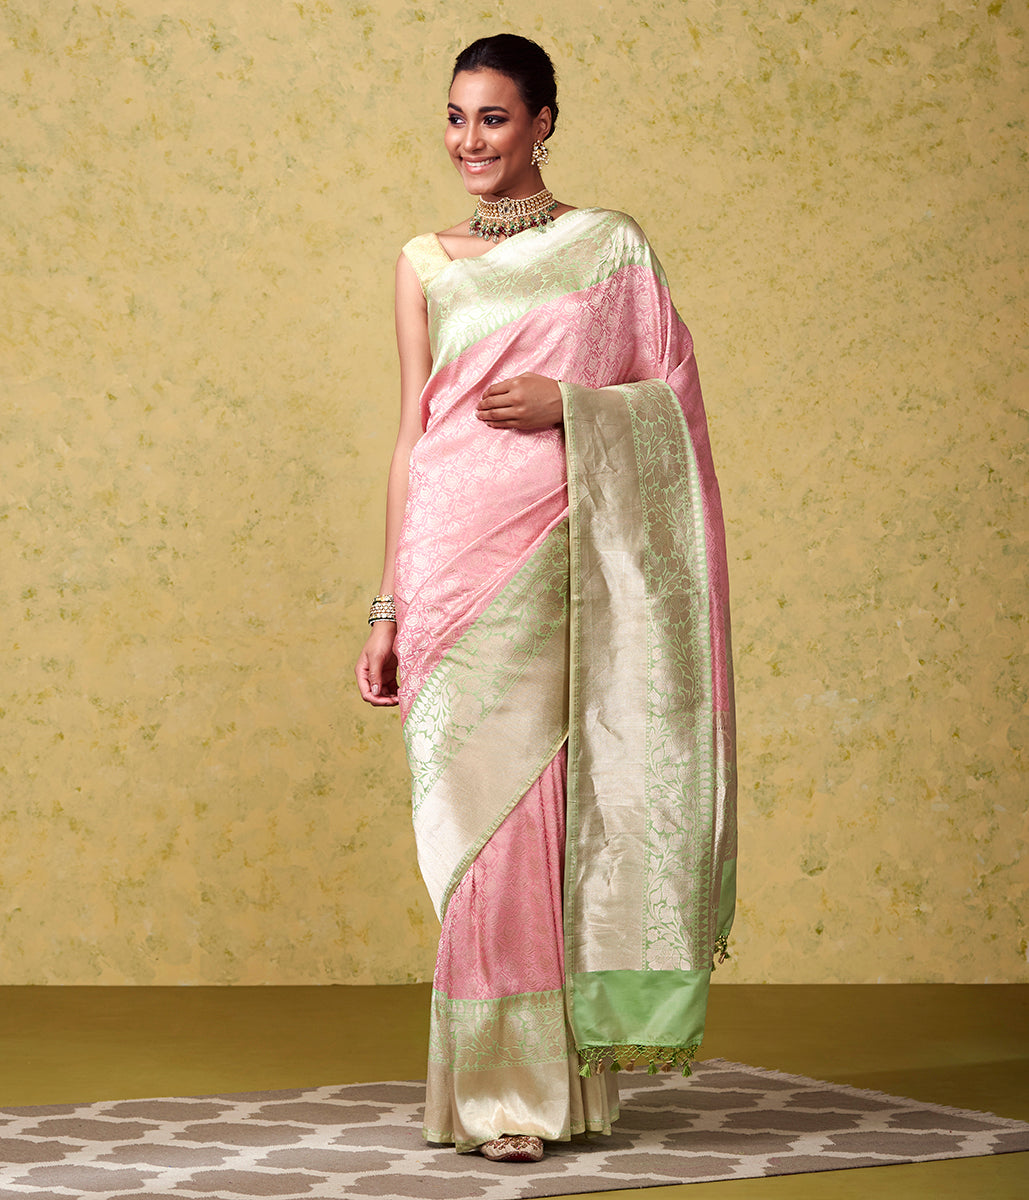 Handwoven Banarasi Kimkhab in Pink with a Pistachio Green Border